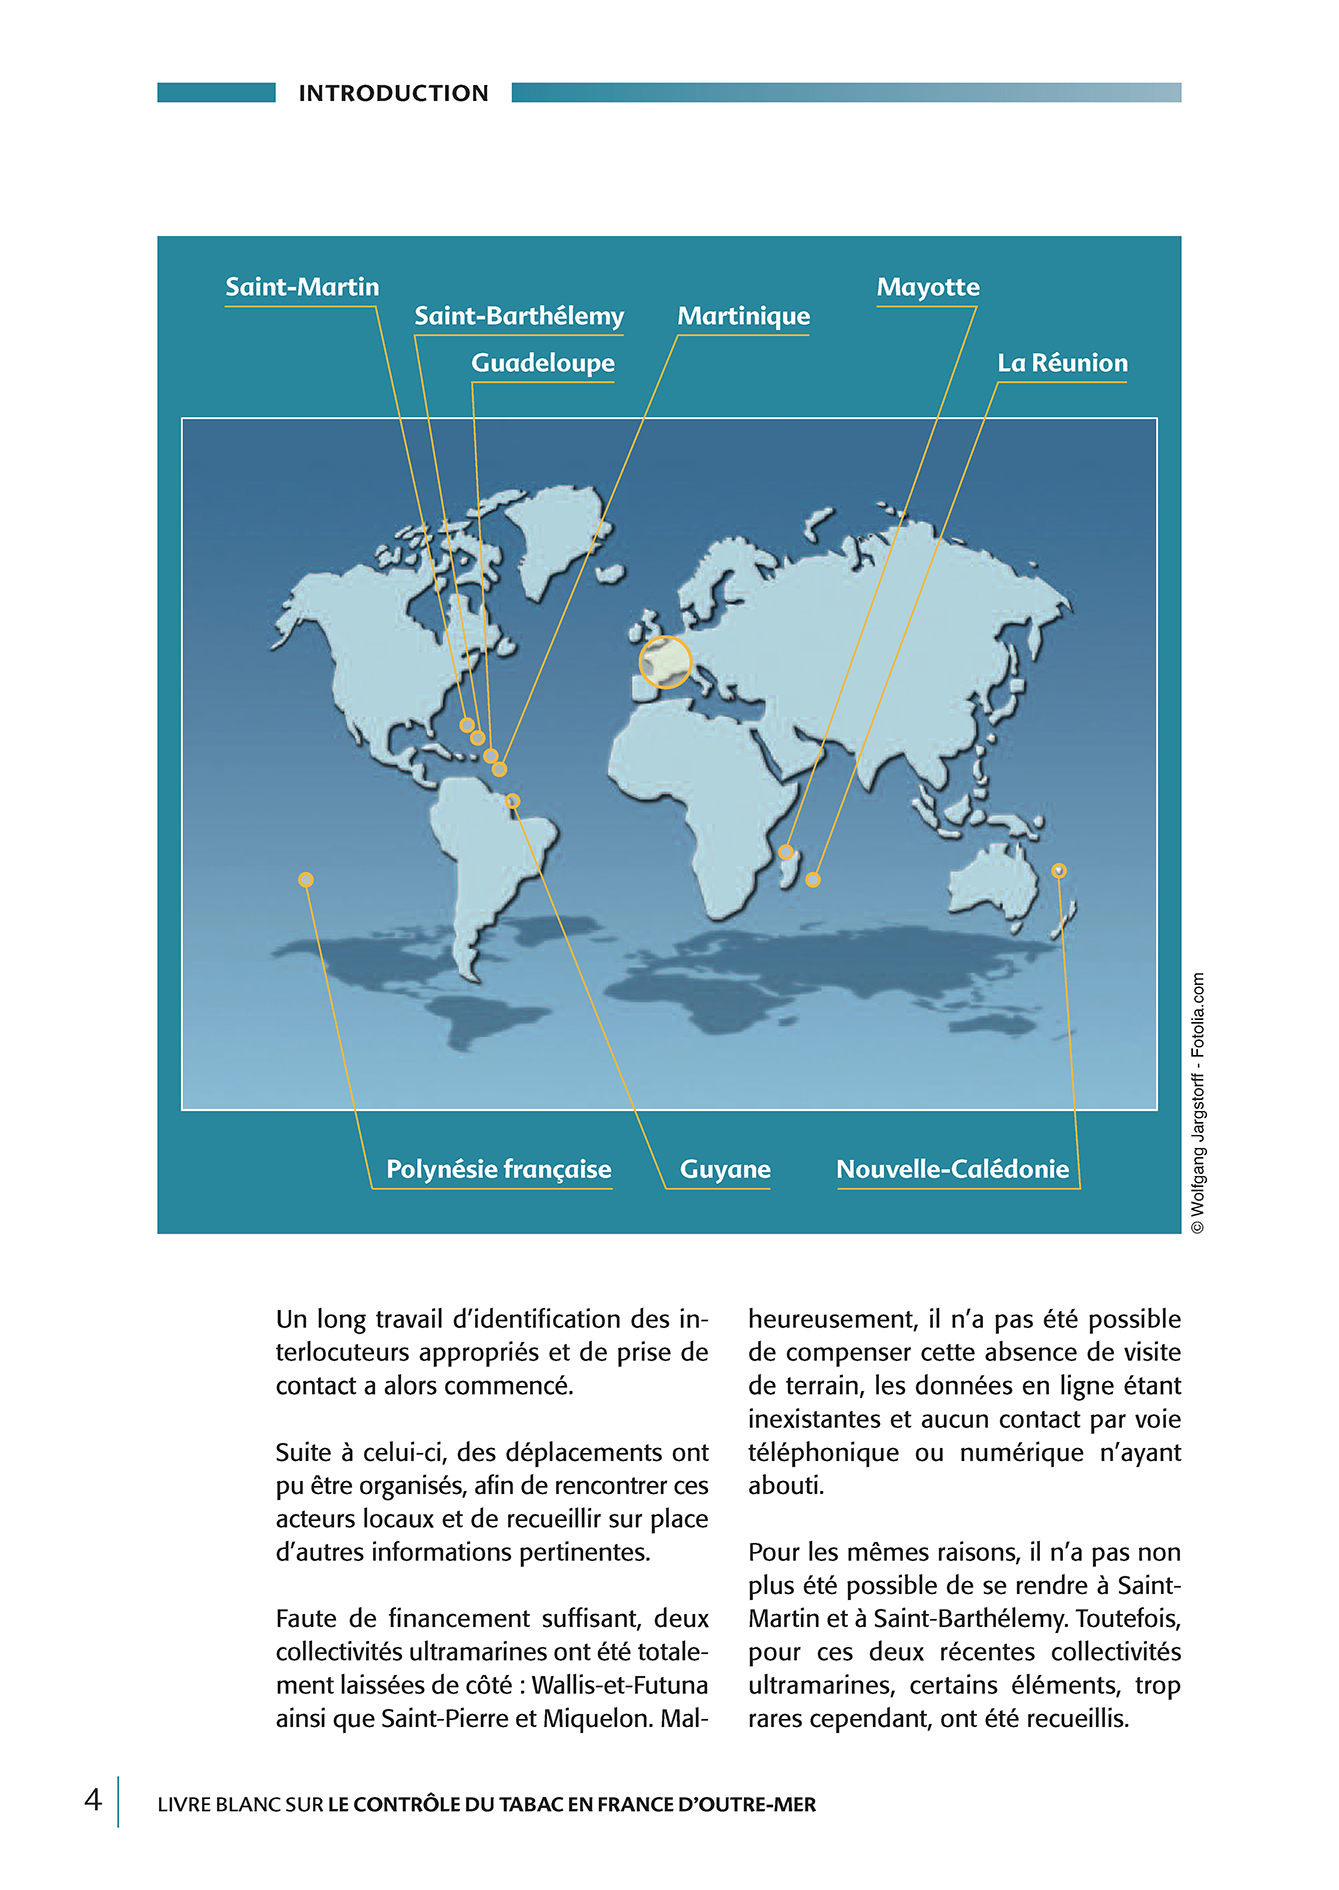 ACT_Livre-blanc-contrôle-tabac-outre-mer-2014_Page_006.jpg